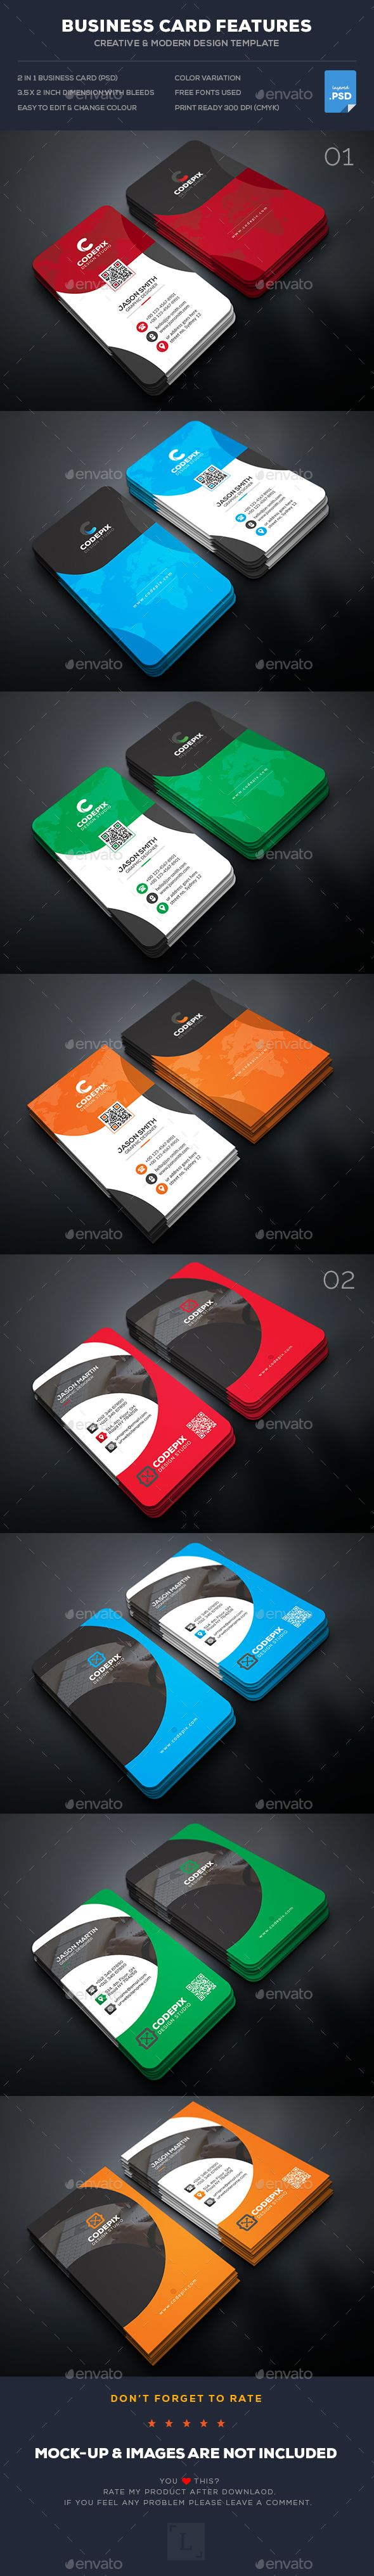 Business Card Bundle | Business cards, Business and Print templates